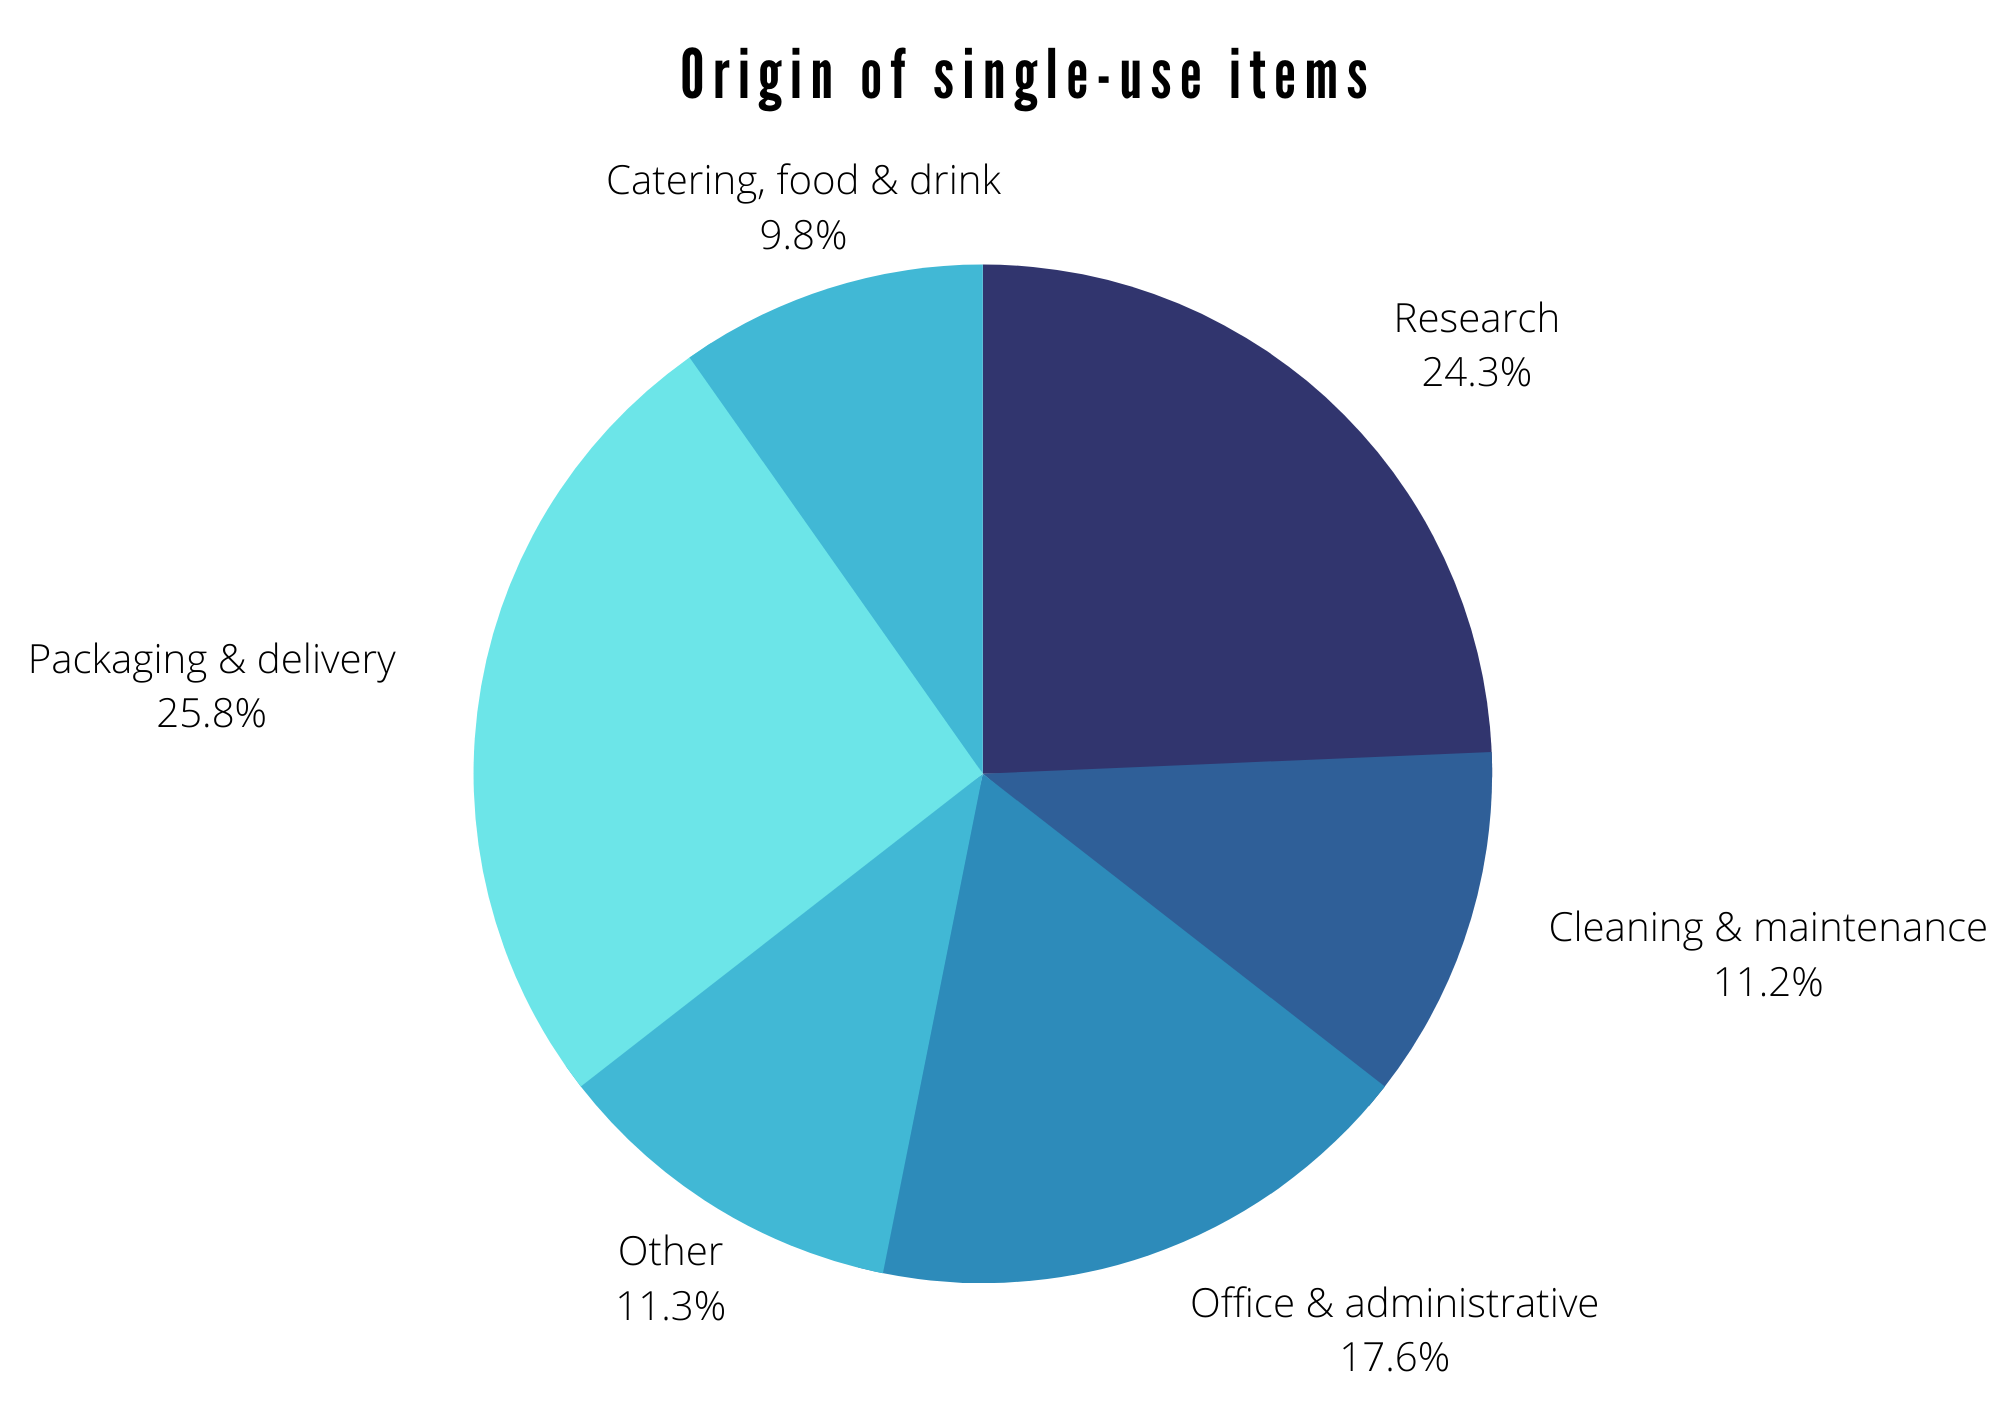 Origin of single use items - Packaging & delivery 26%, Research 24%, Office & administrative 18%